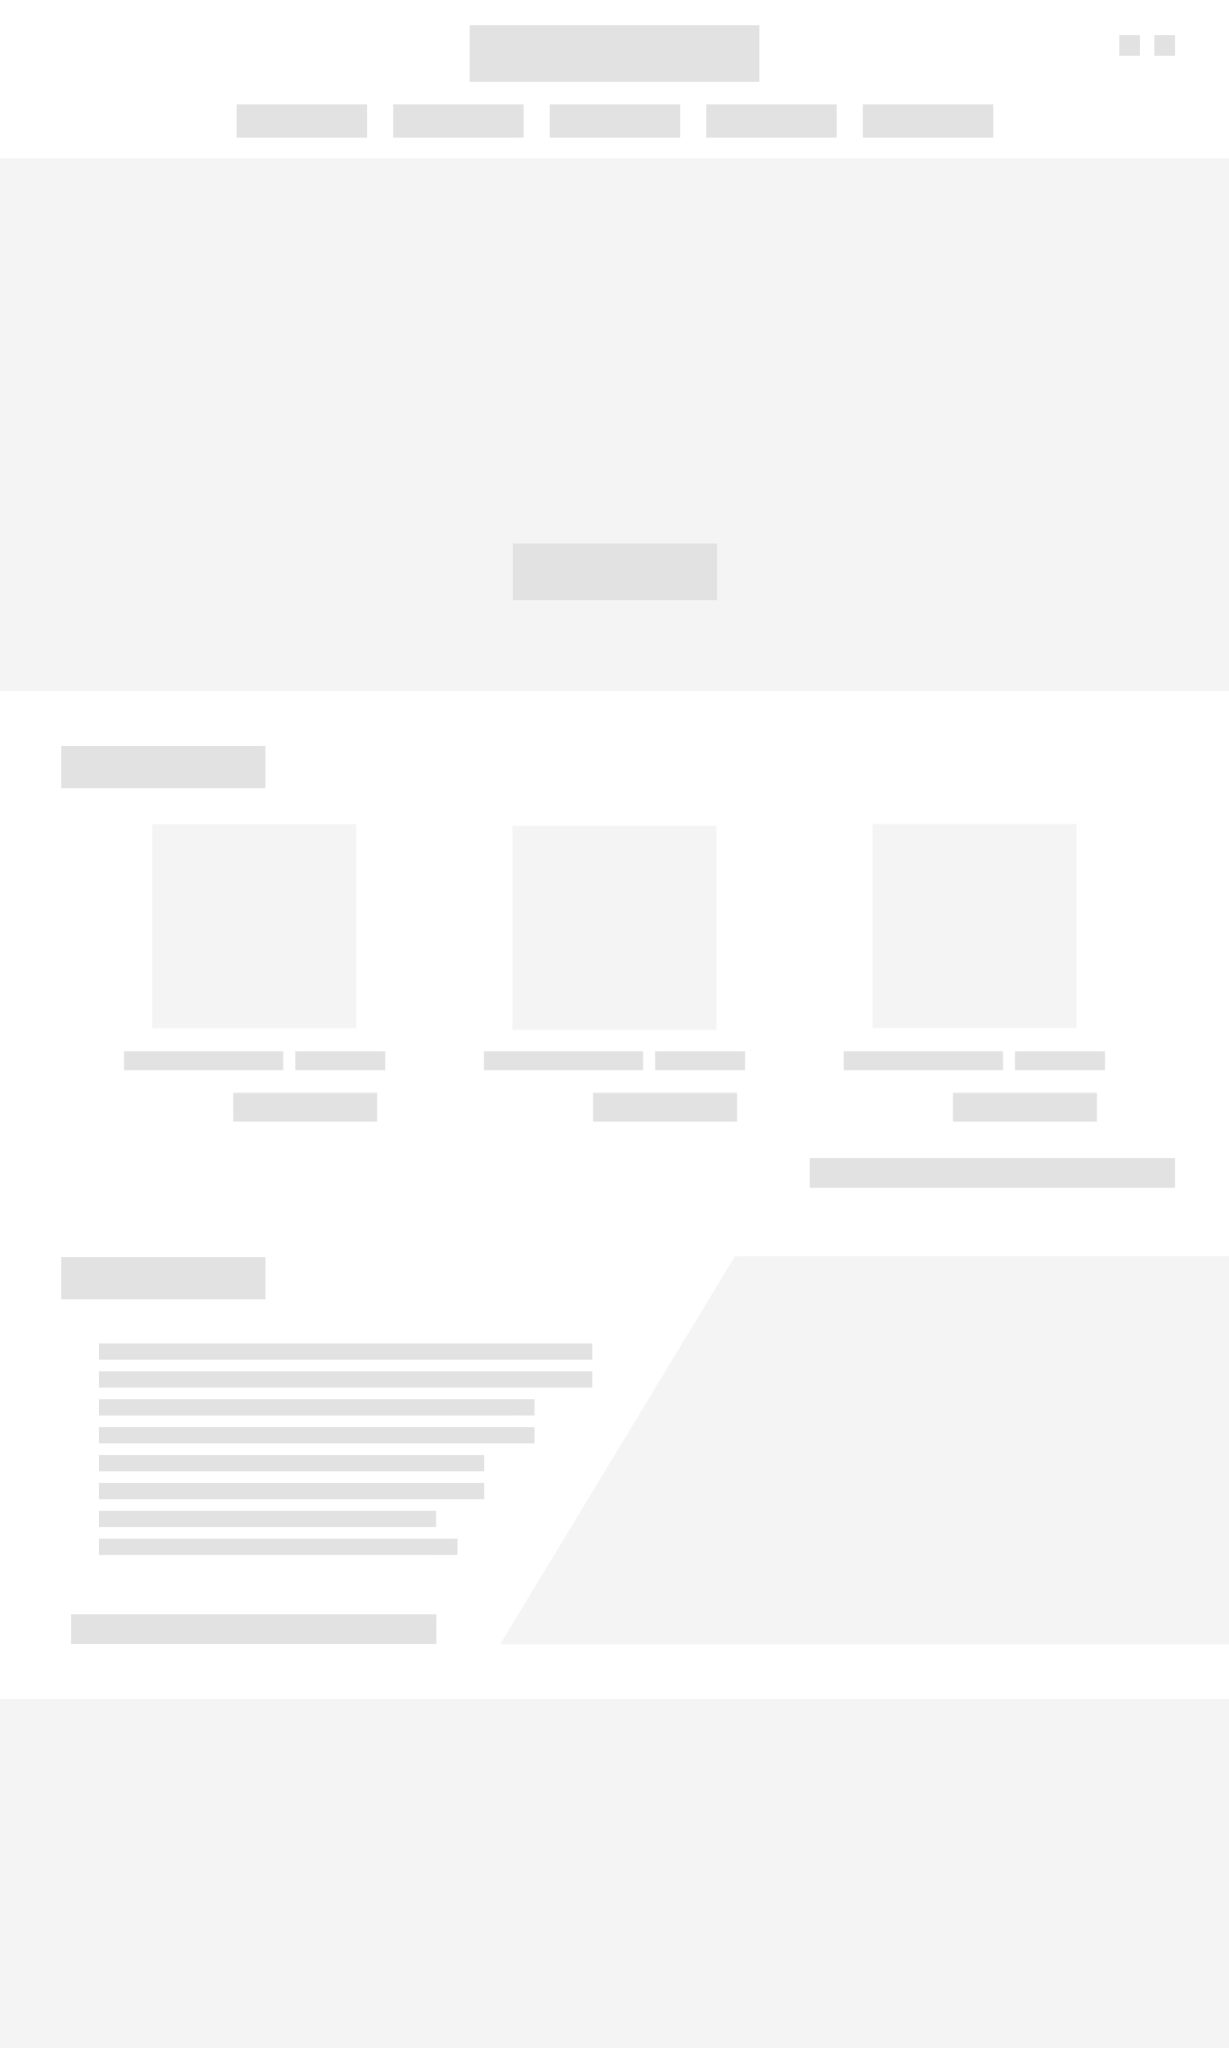 Wireframe - Page acceuil